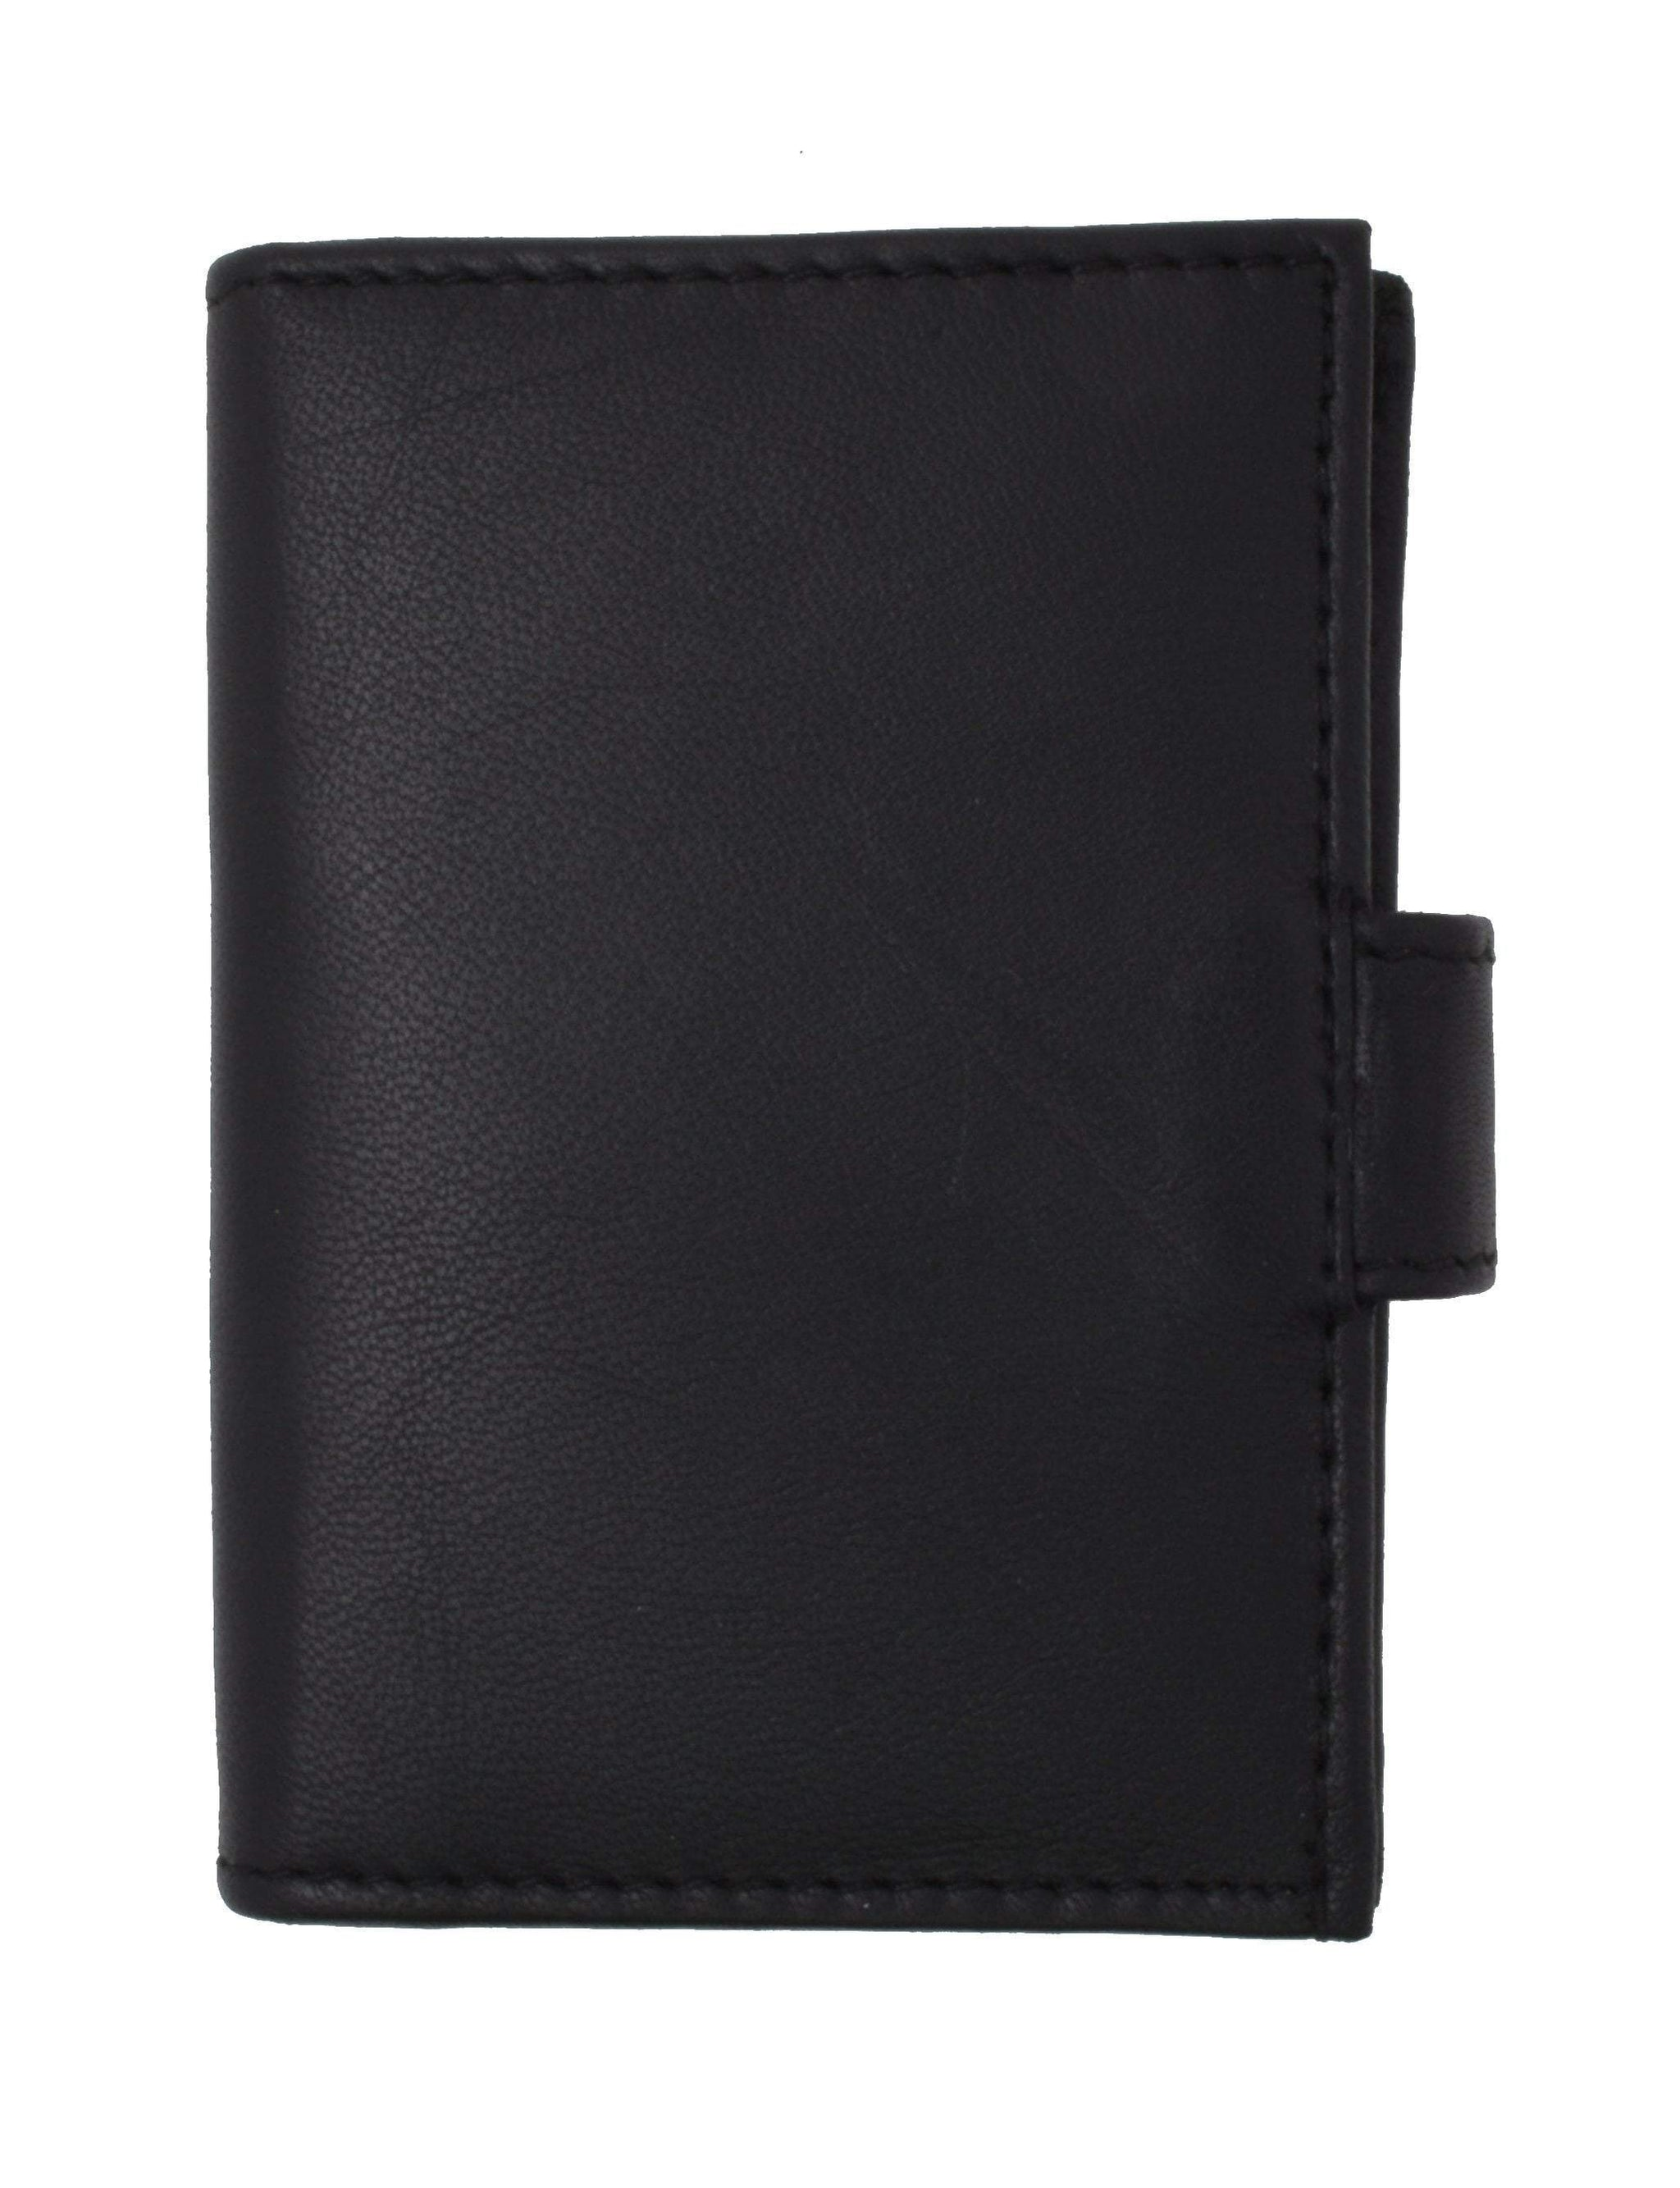 Premium Soft Leather RFID Blocking Credit Card ID Holder with Snap Closure